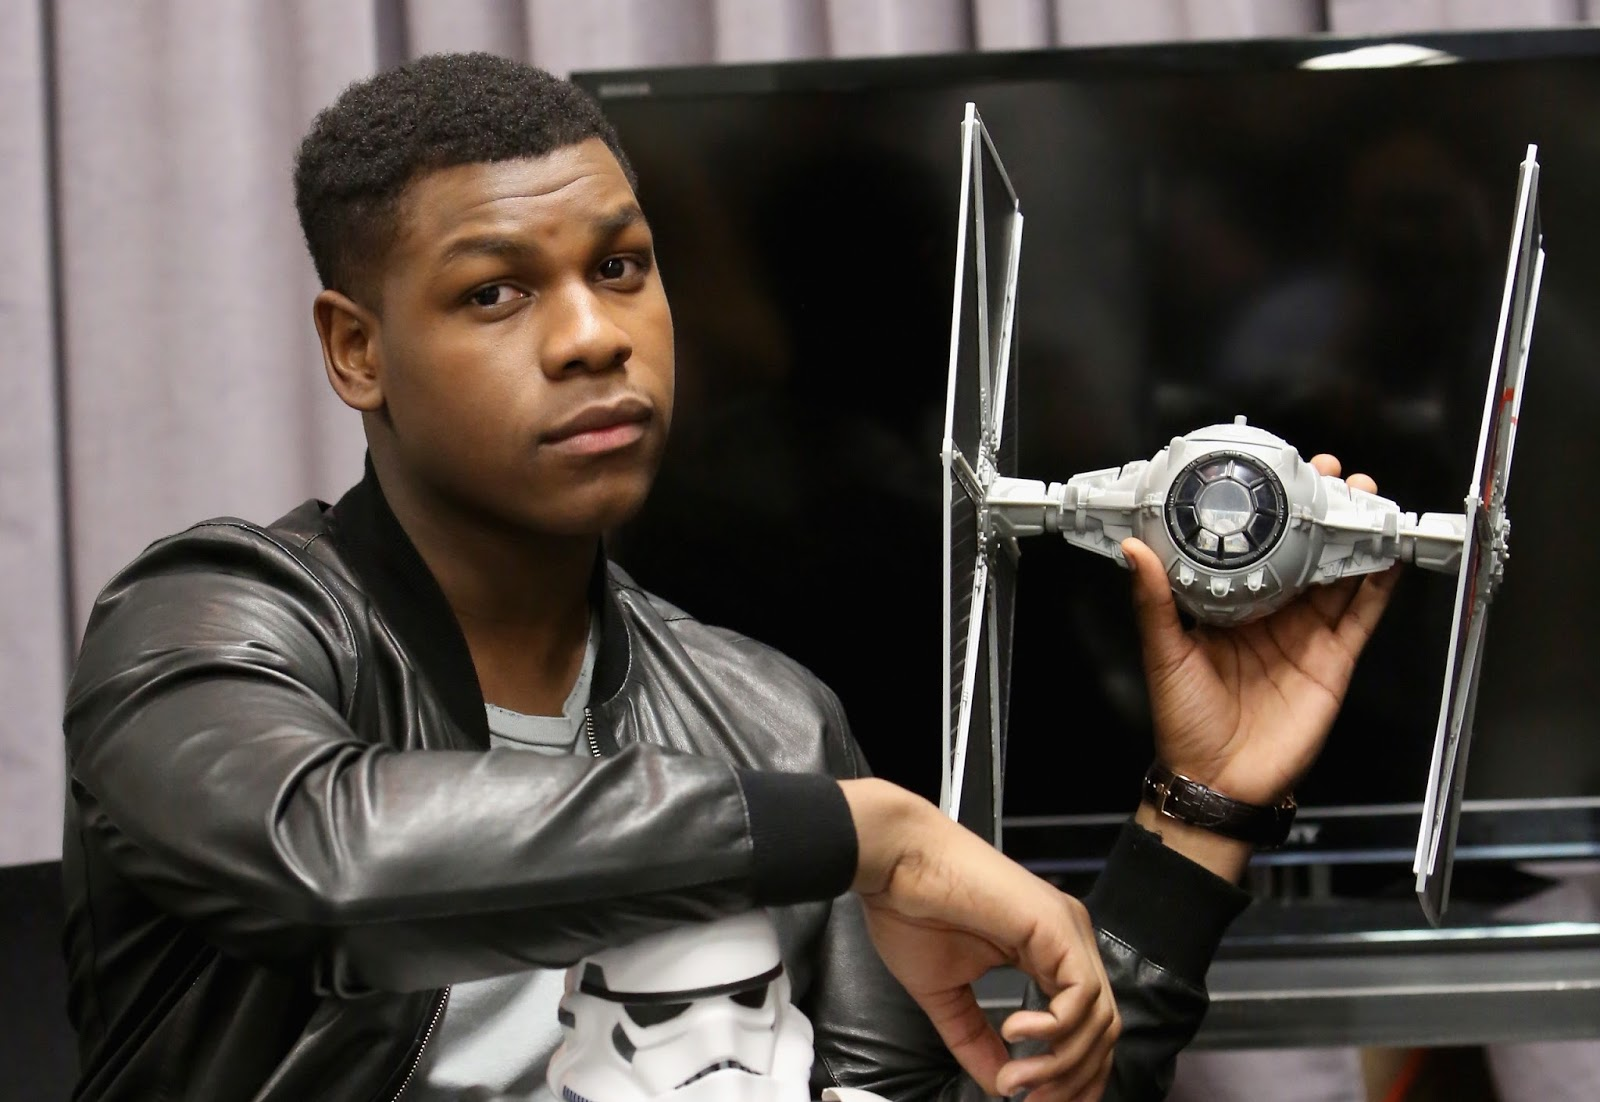 5 THINGS YOU DIDN'T KNOW ABOUT 'STAR WARS' LEAD ACTOR & SOUTH LONDONER 'JOHN BOYEGA' (VIDEO)